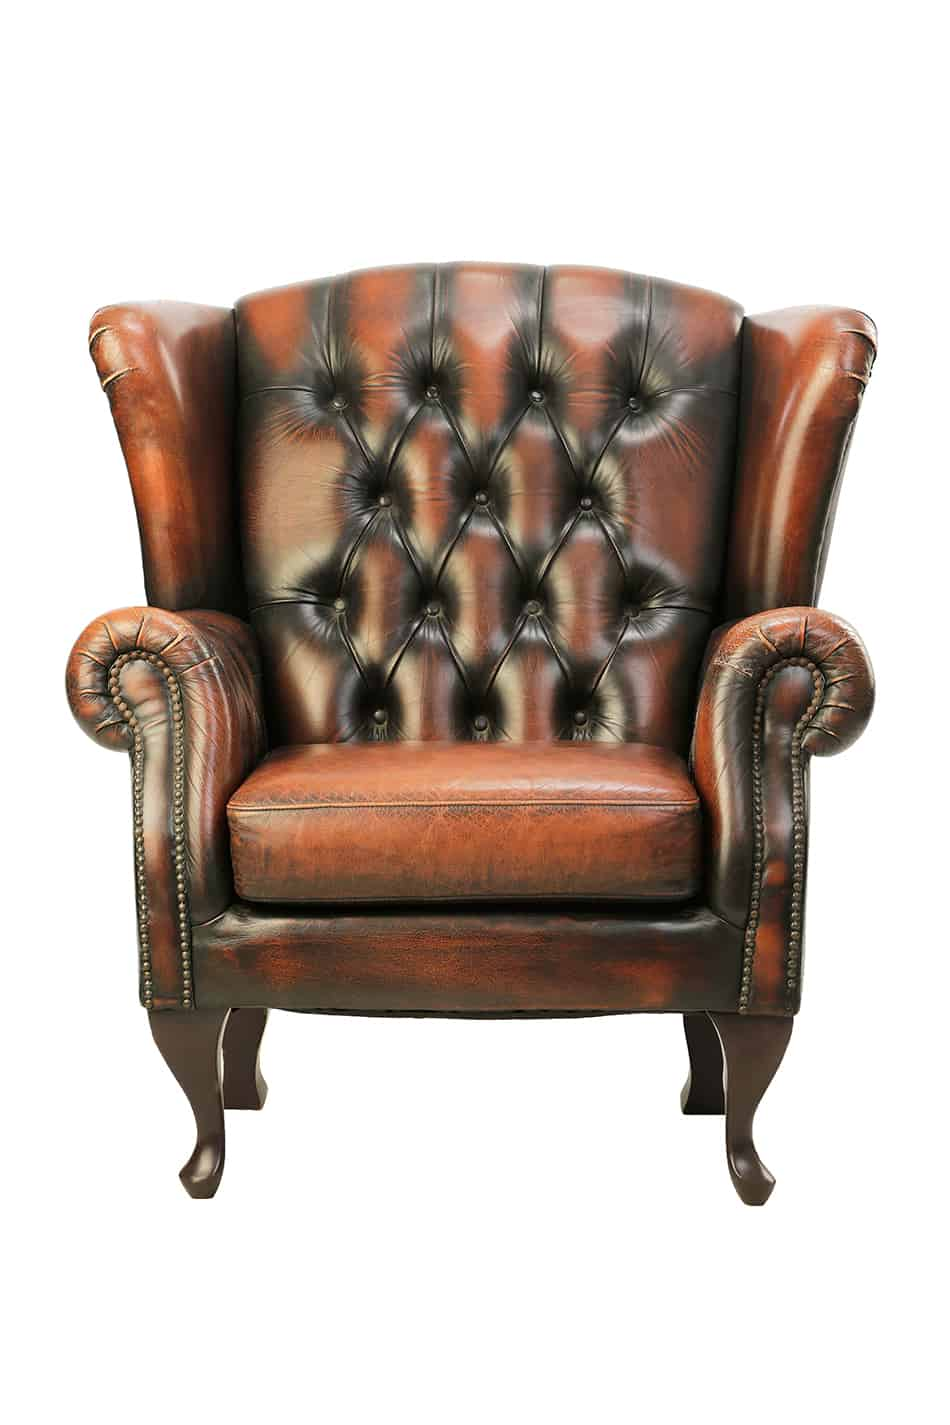 Chesterfield Queen Anne armchair